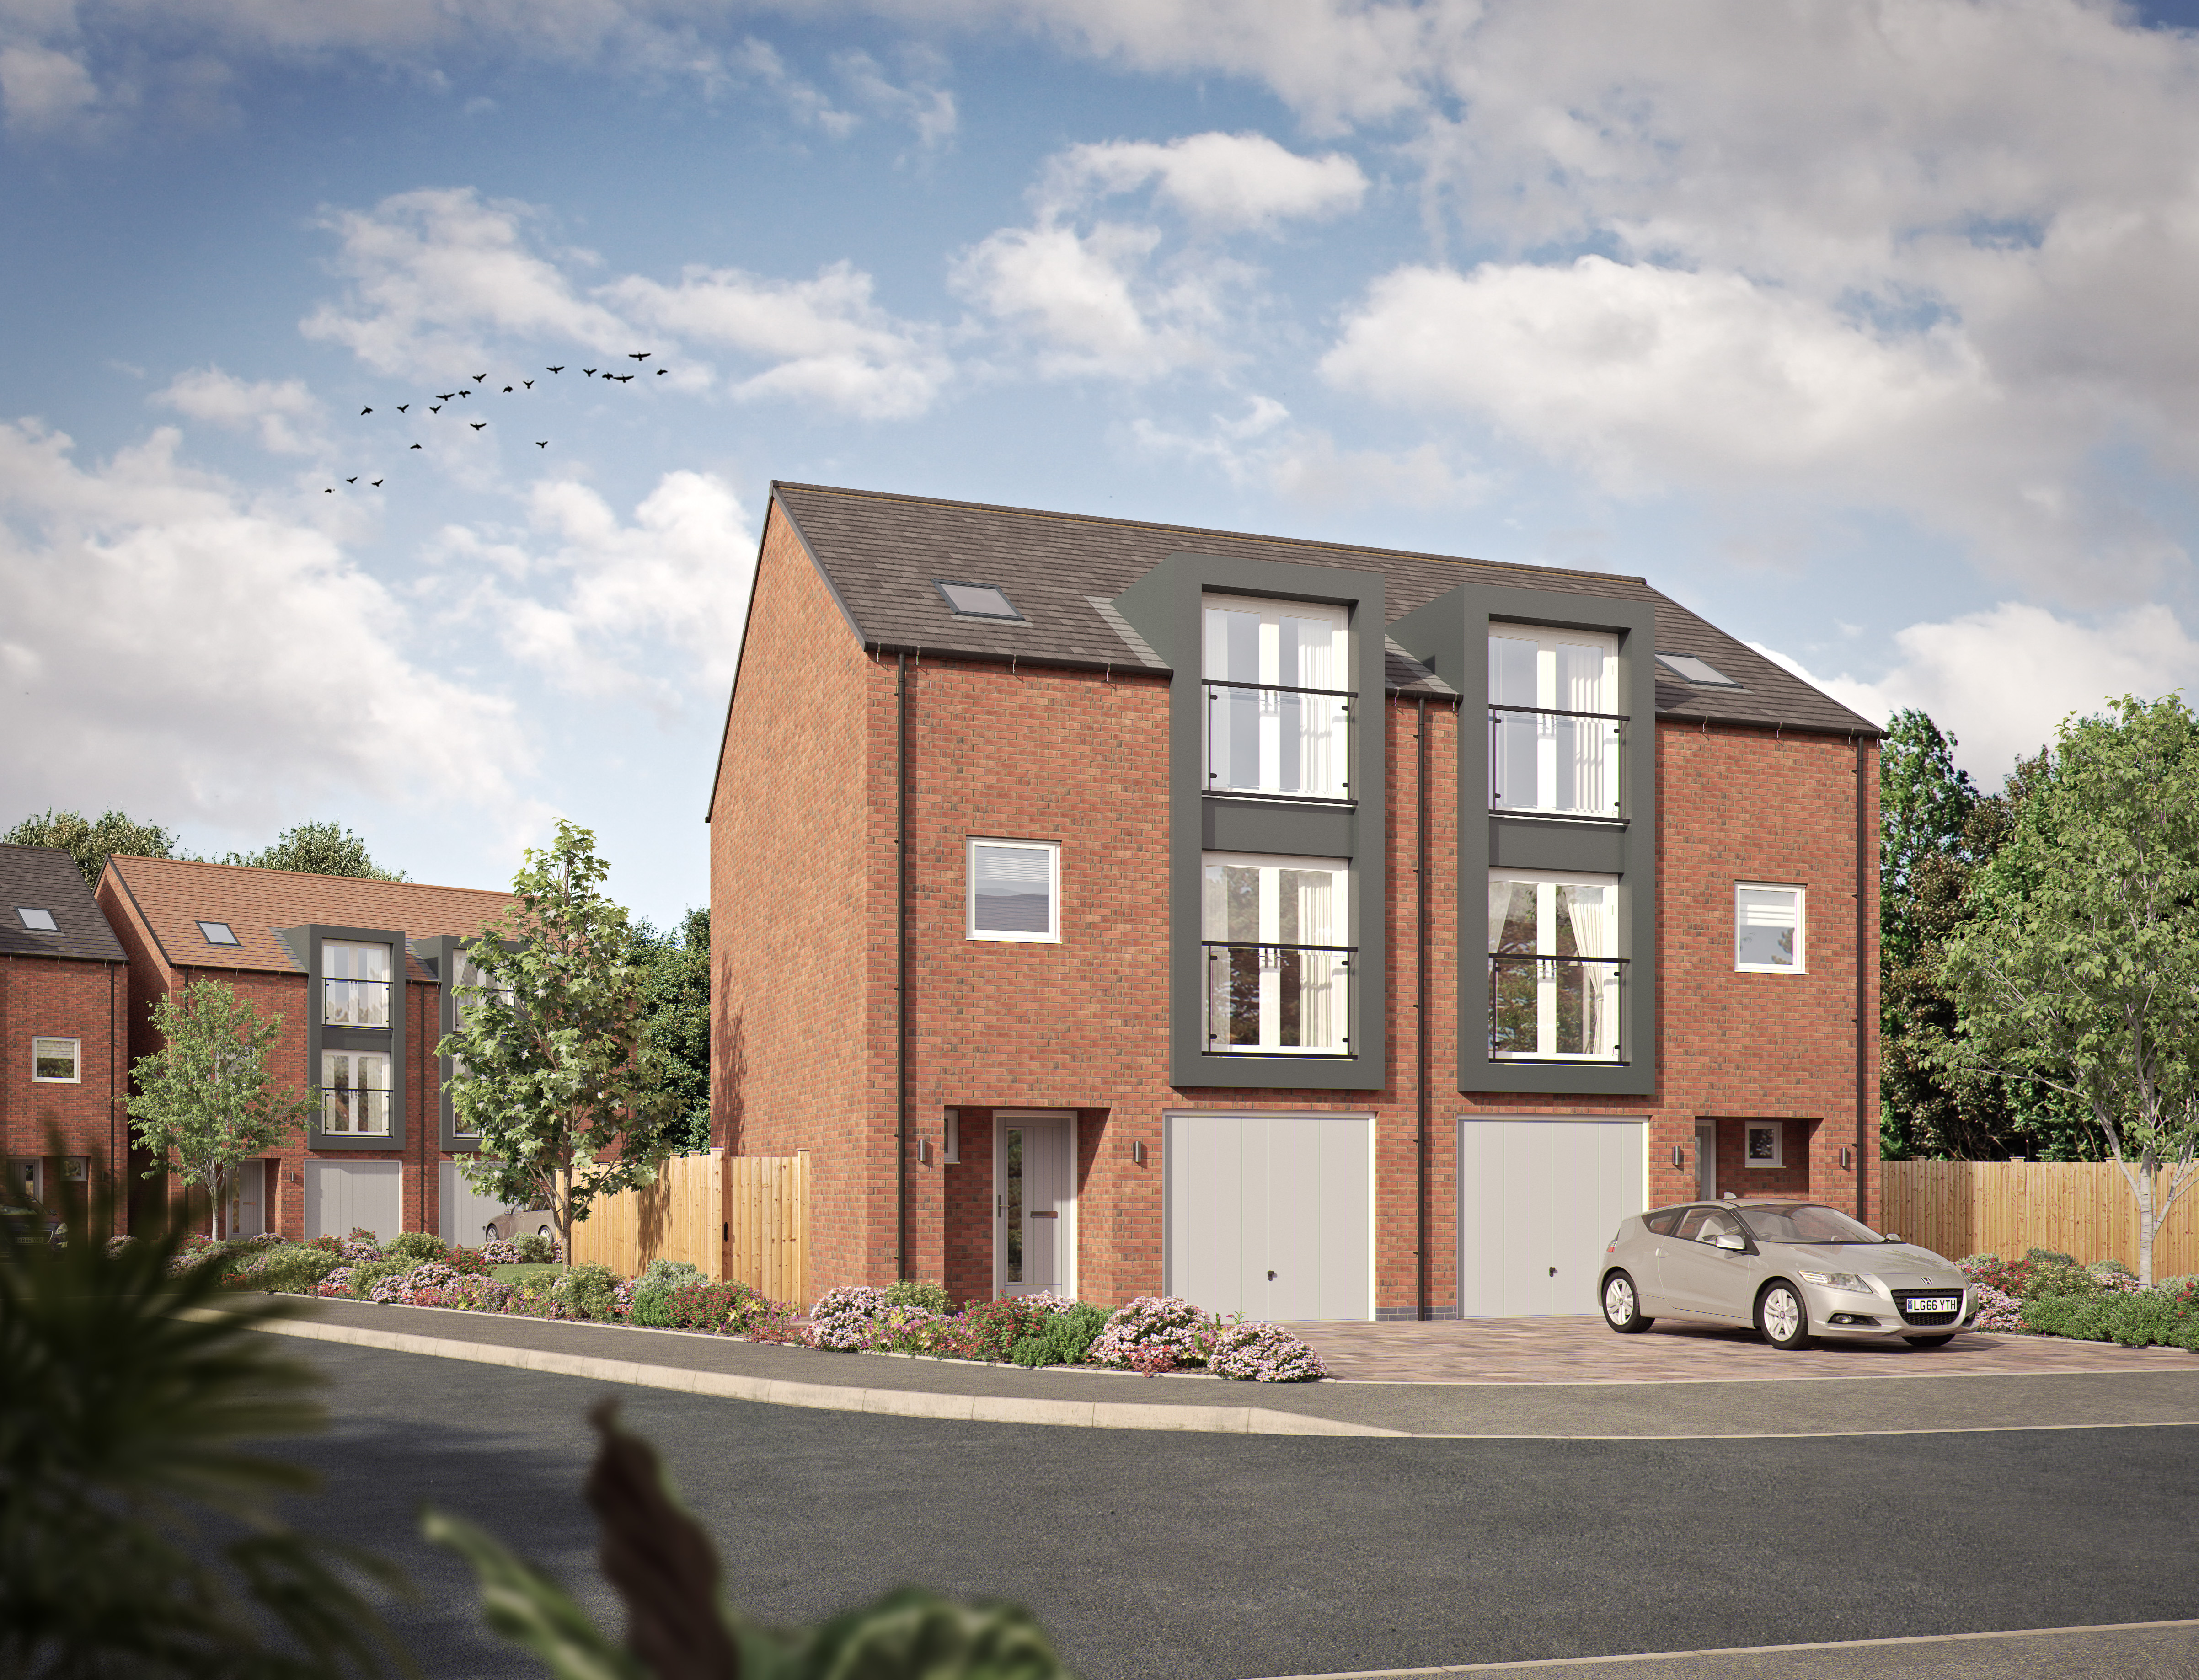 21st March launch date announced for Peveril Homes' Myford Place show home in Beeston